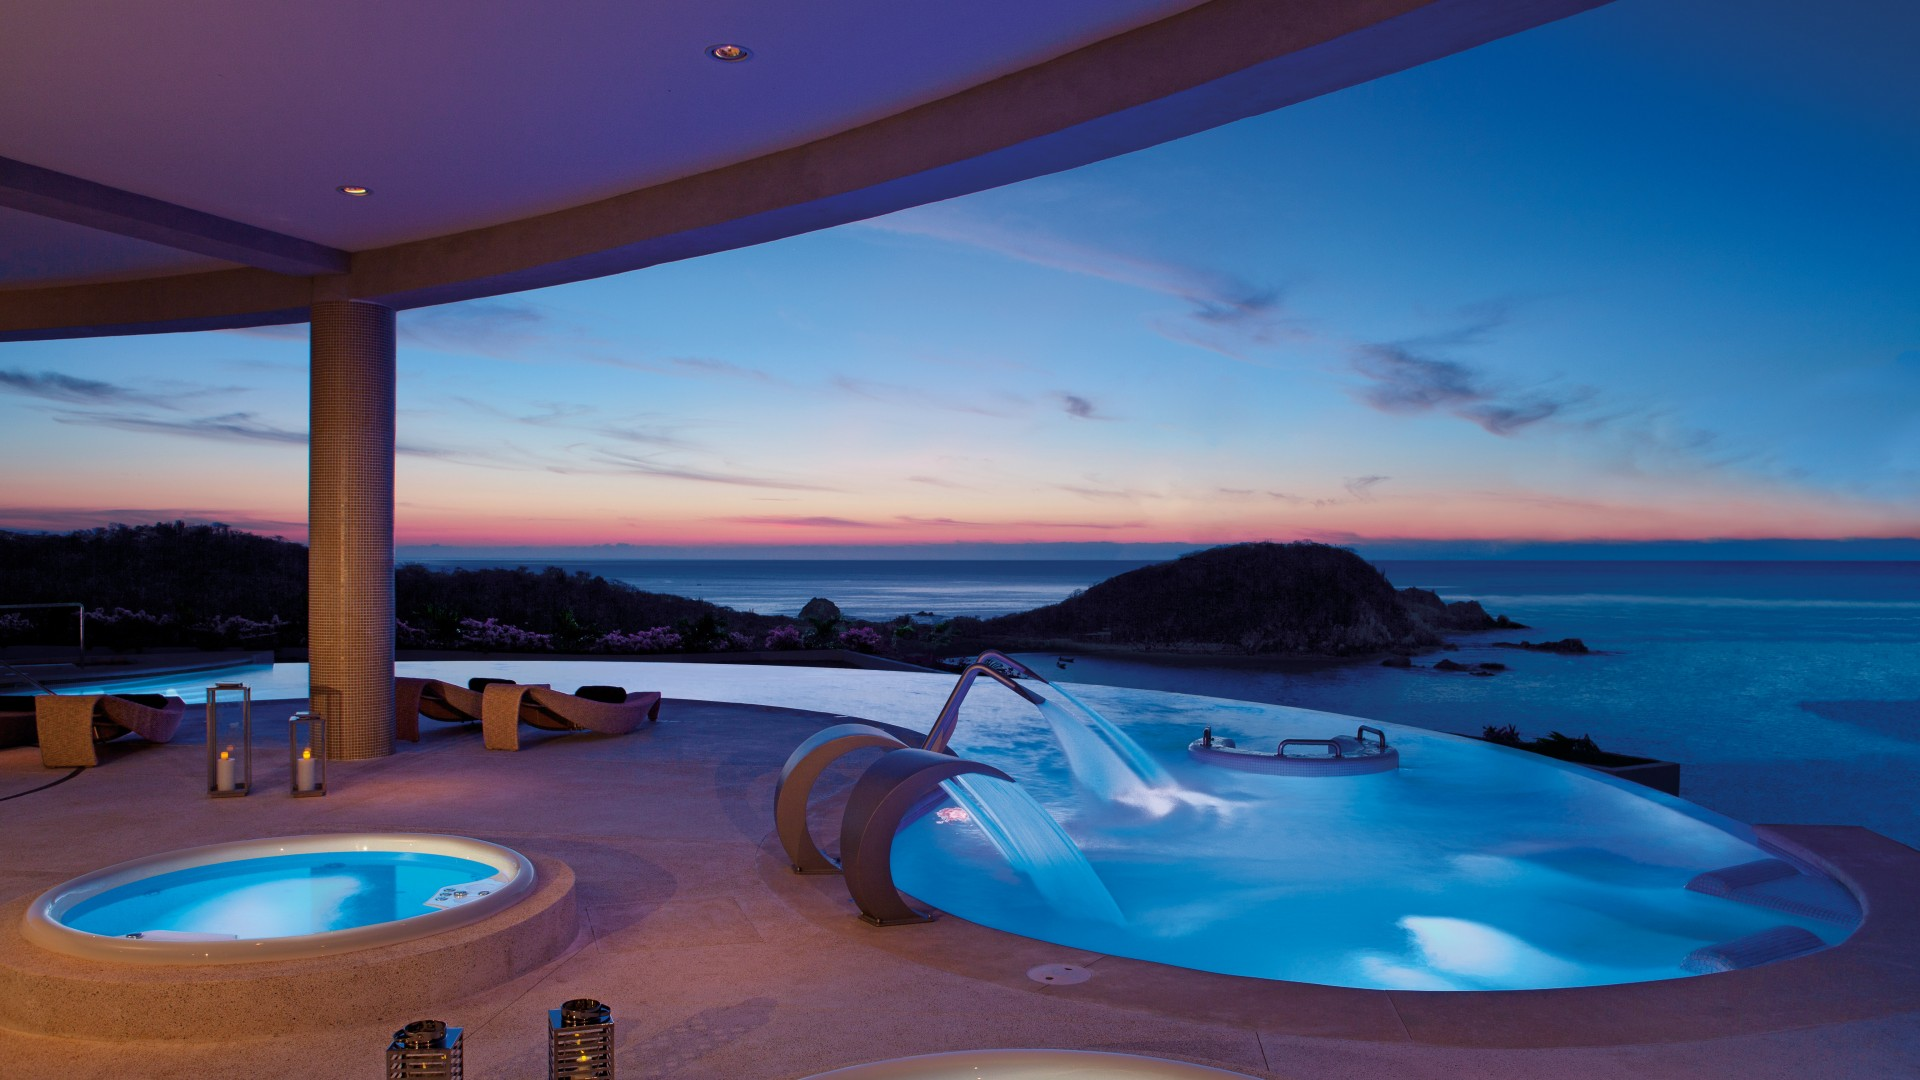 Secrets Huatulco Resort And Spa, Best Hotels of 2017, Mexico, tourism, travel, resort, vacation, sea, ocean, pool (horizontal)